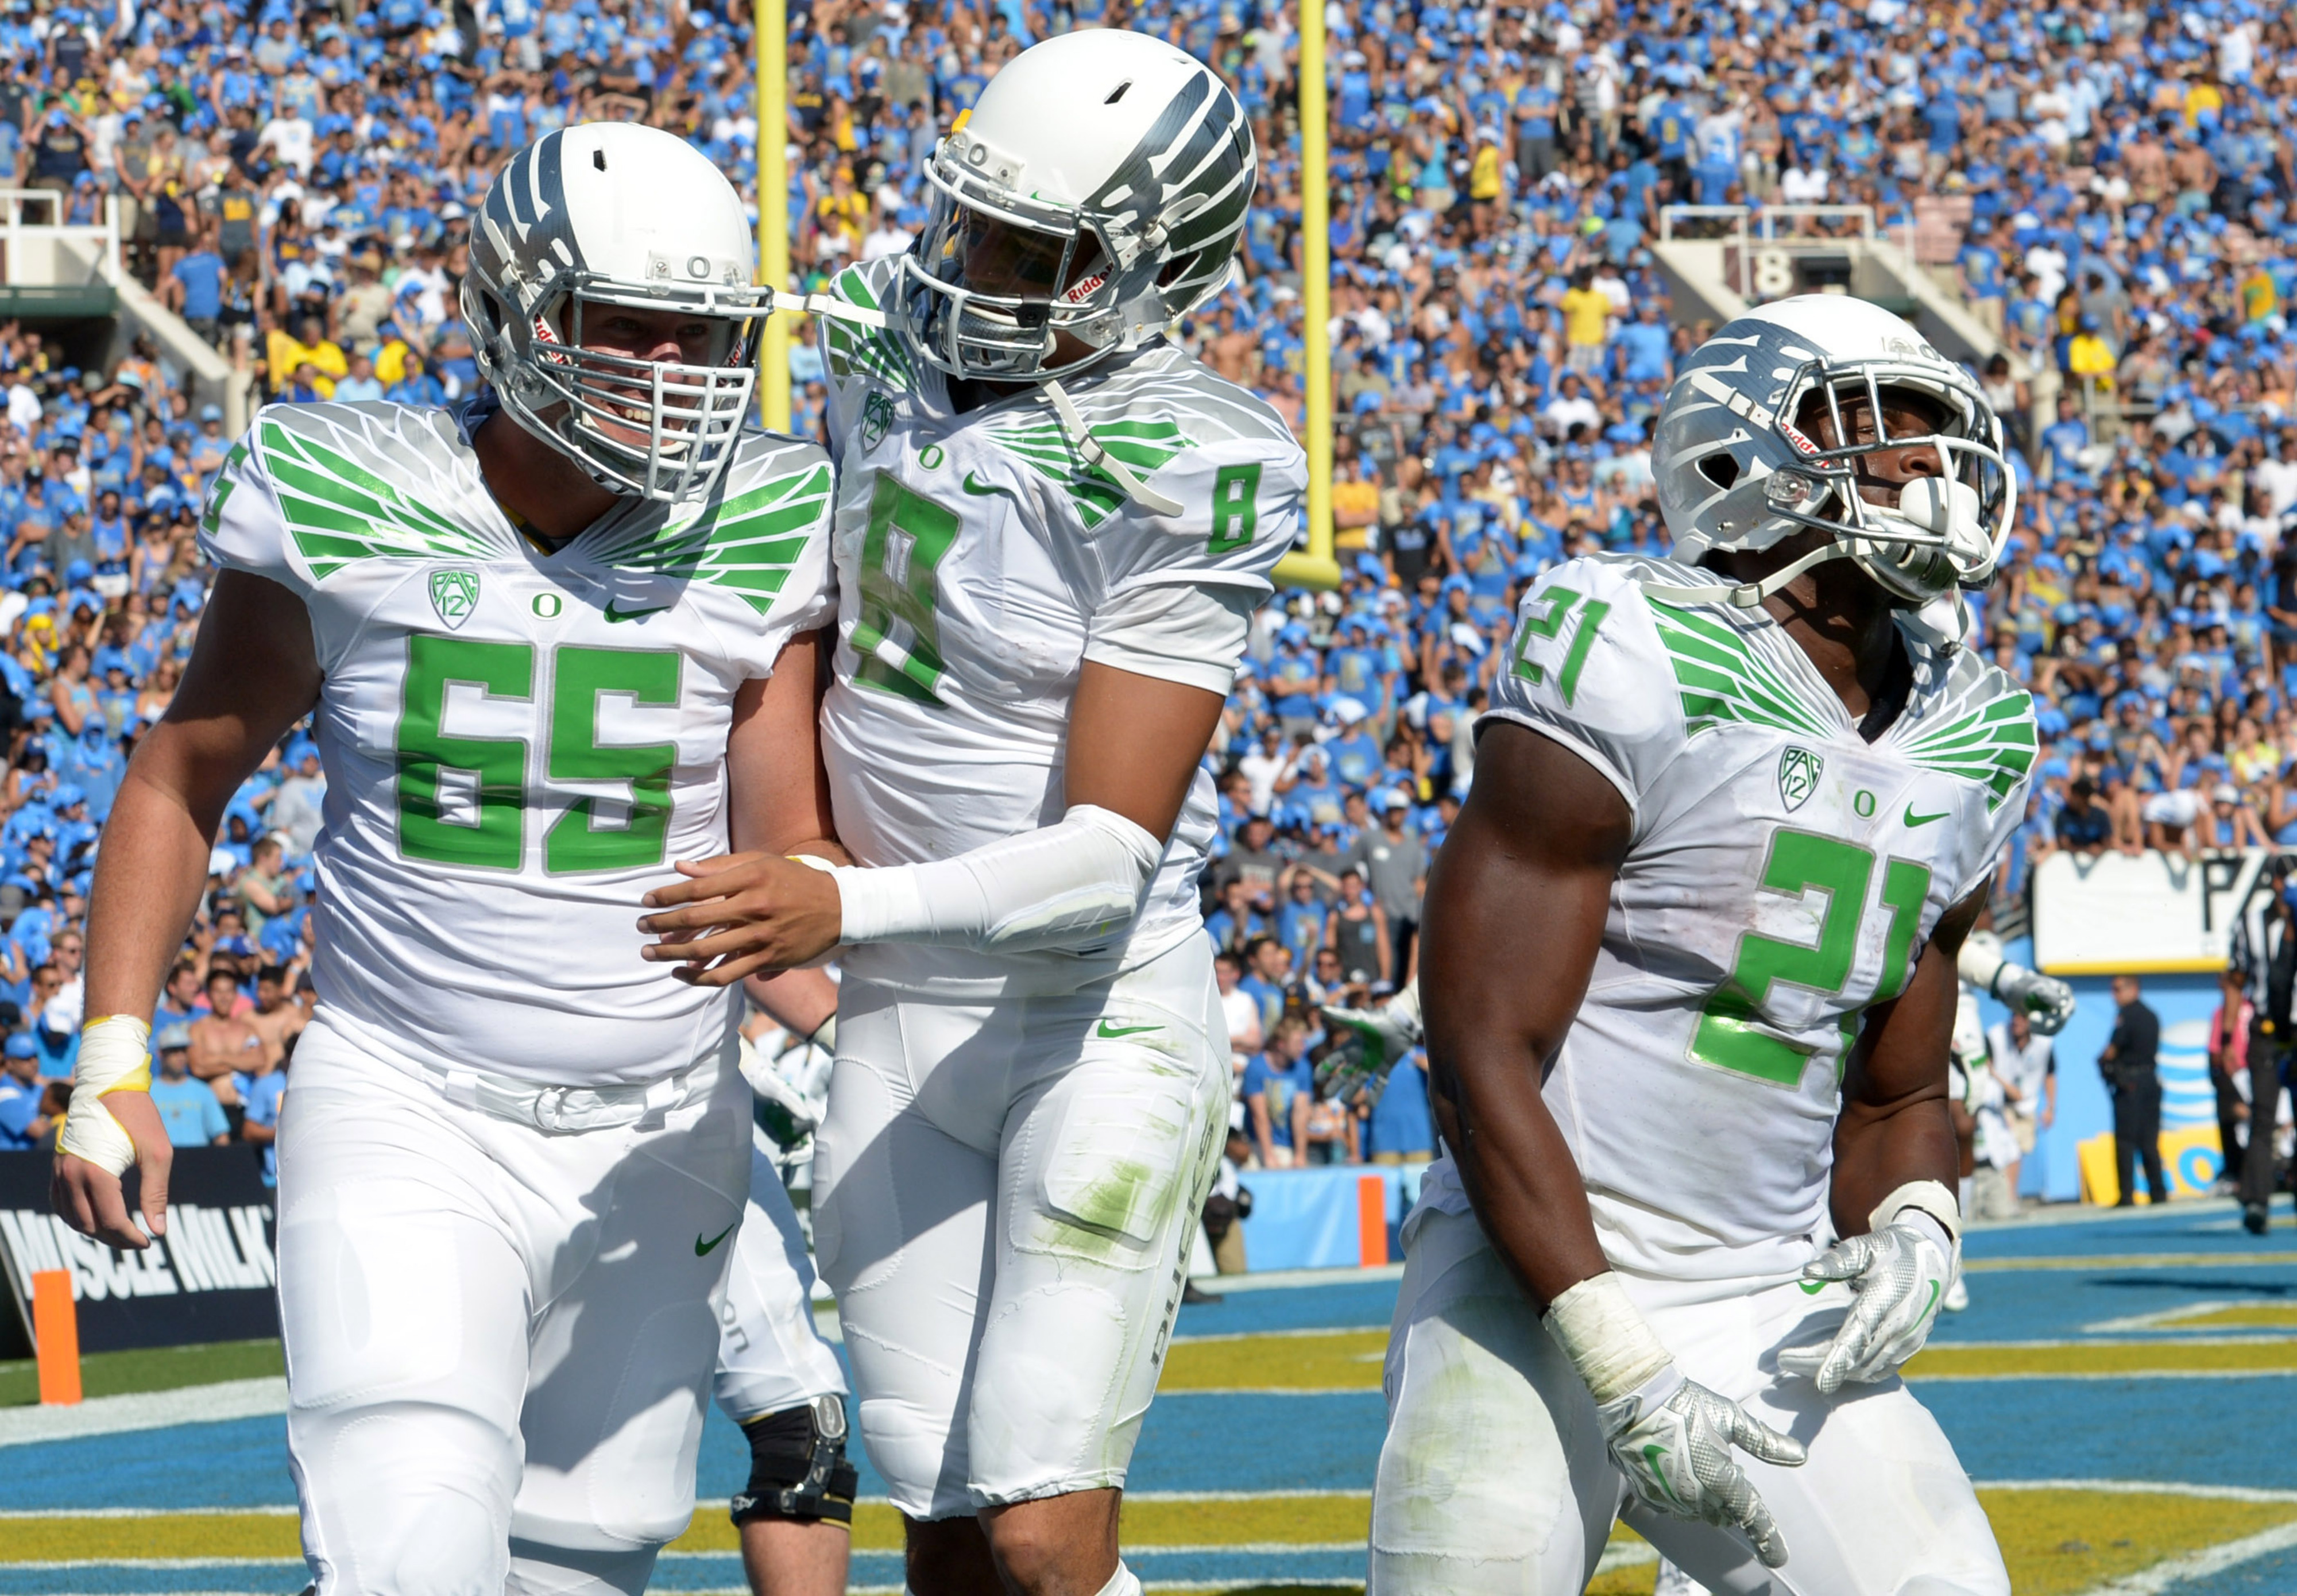 Oregon Looked Good And Played Good On Saturday At UCLA